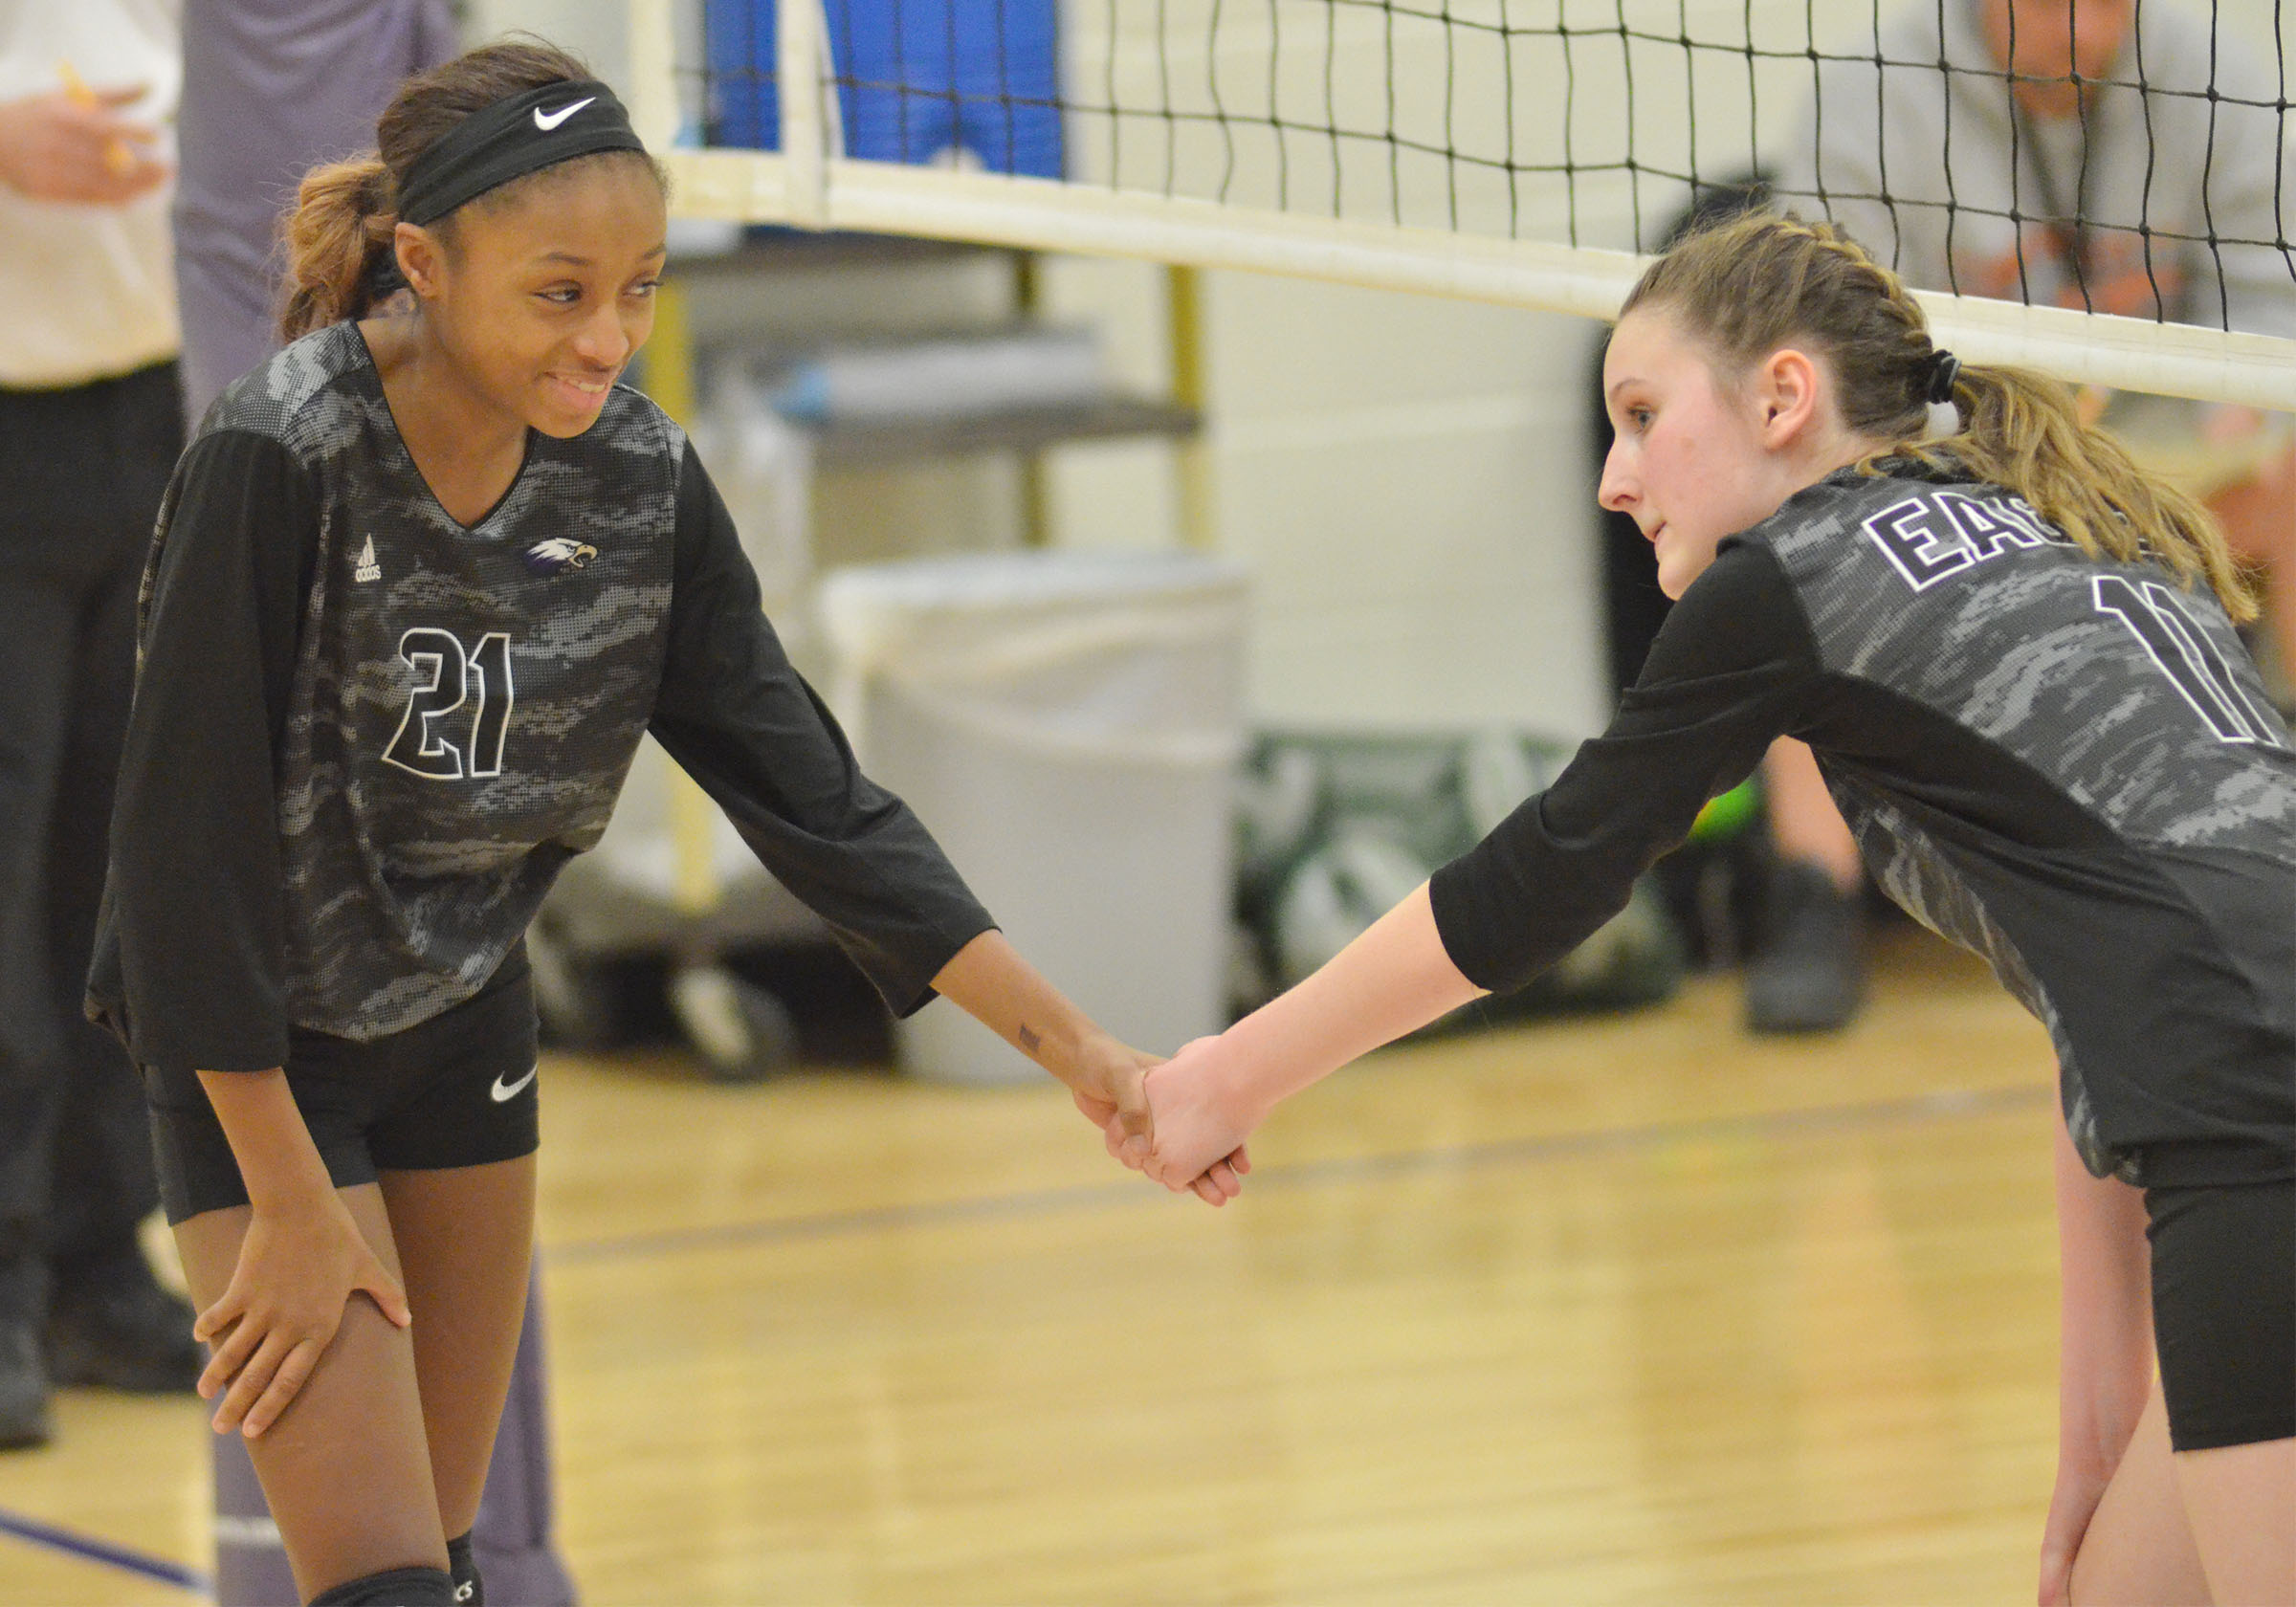 CMS seventh-grader Bri Gowdy, at left, and eighth-grader Zoie Sidebottom get set for a play.